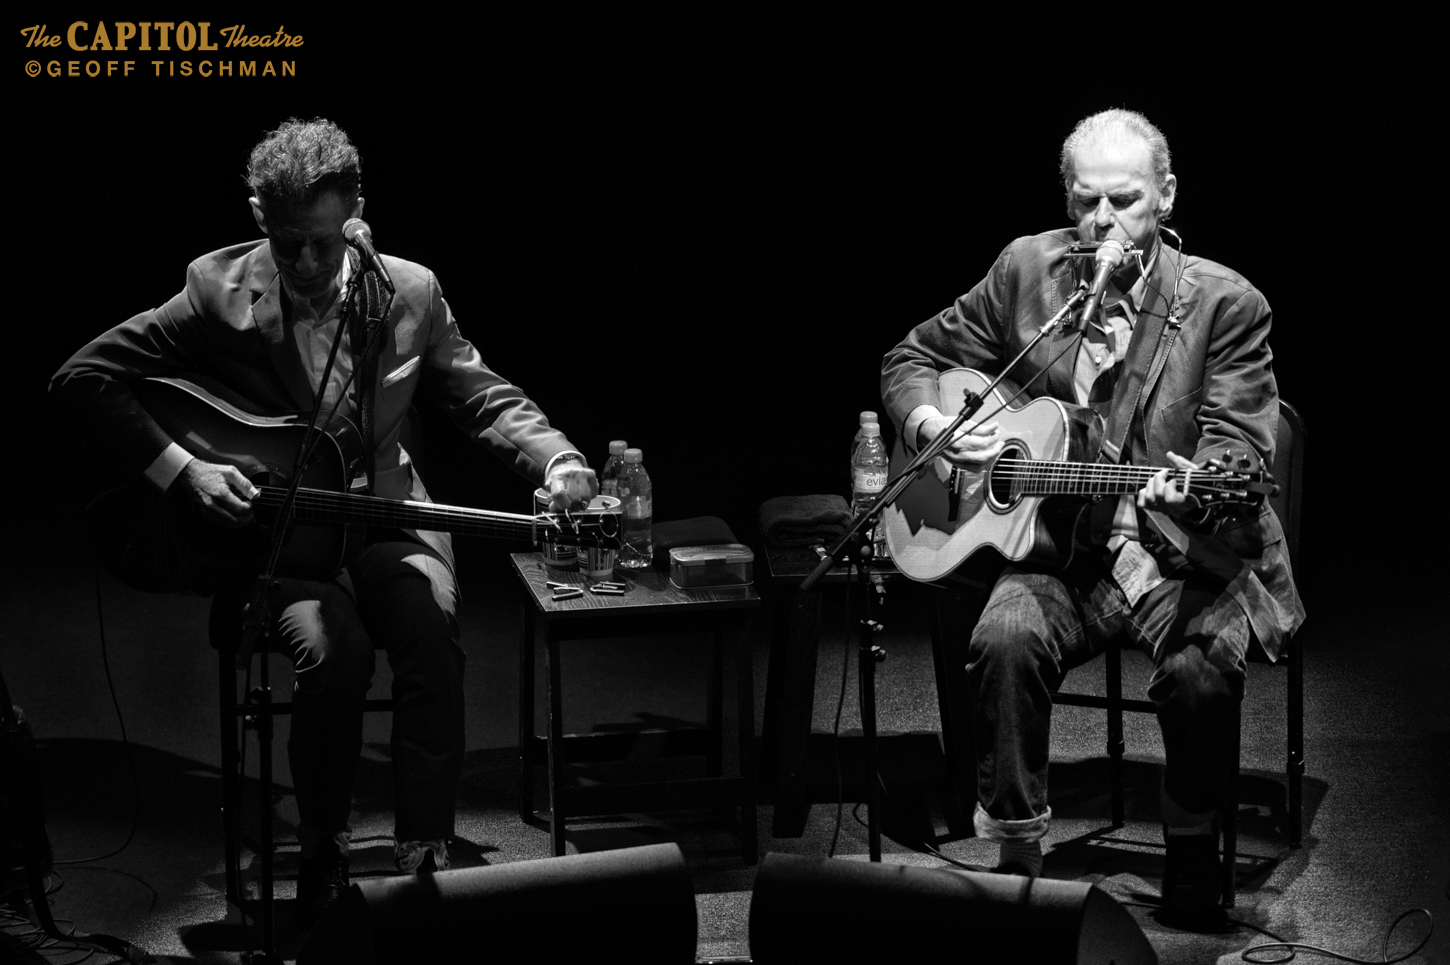 Lyle Lovett and John Hiatt Live In New York